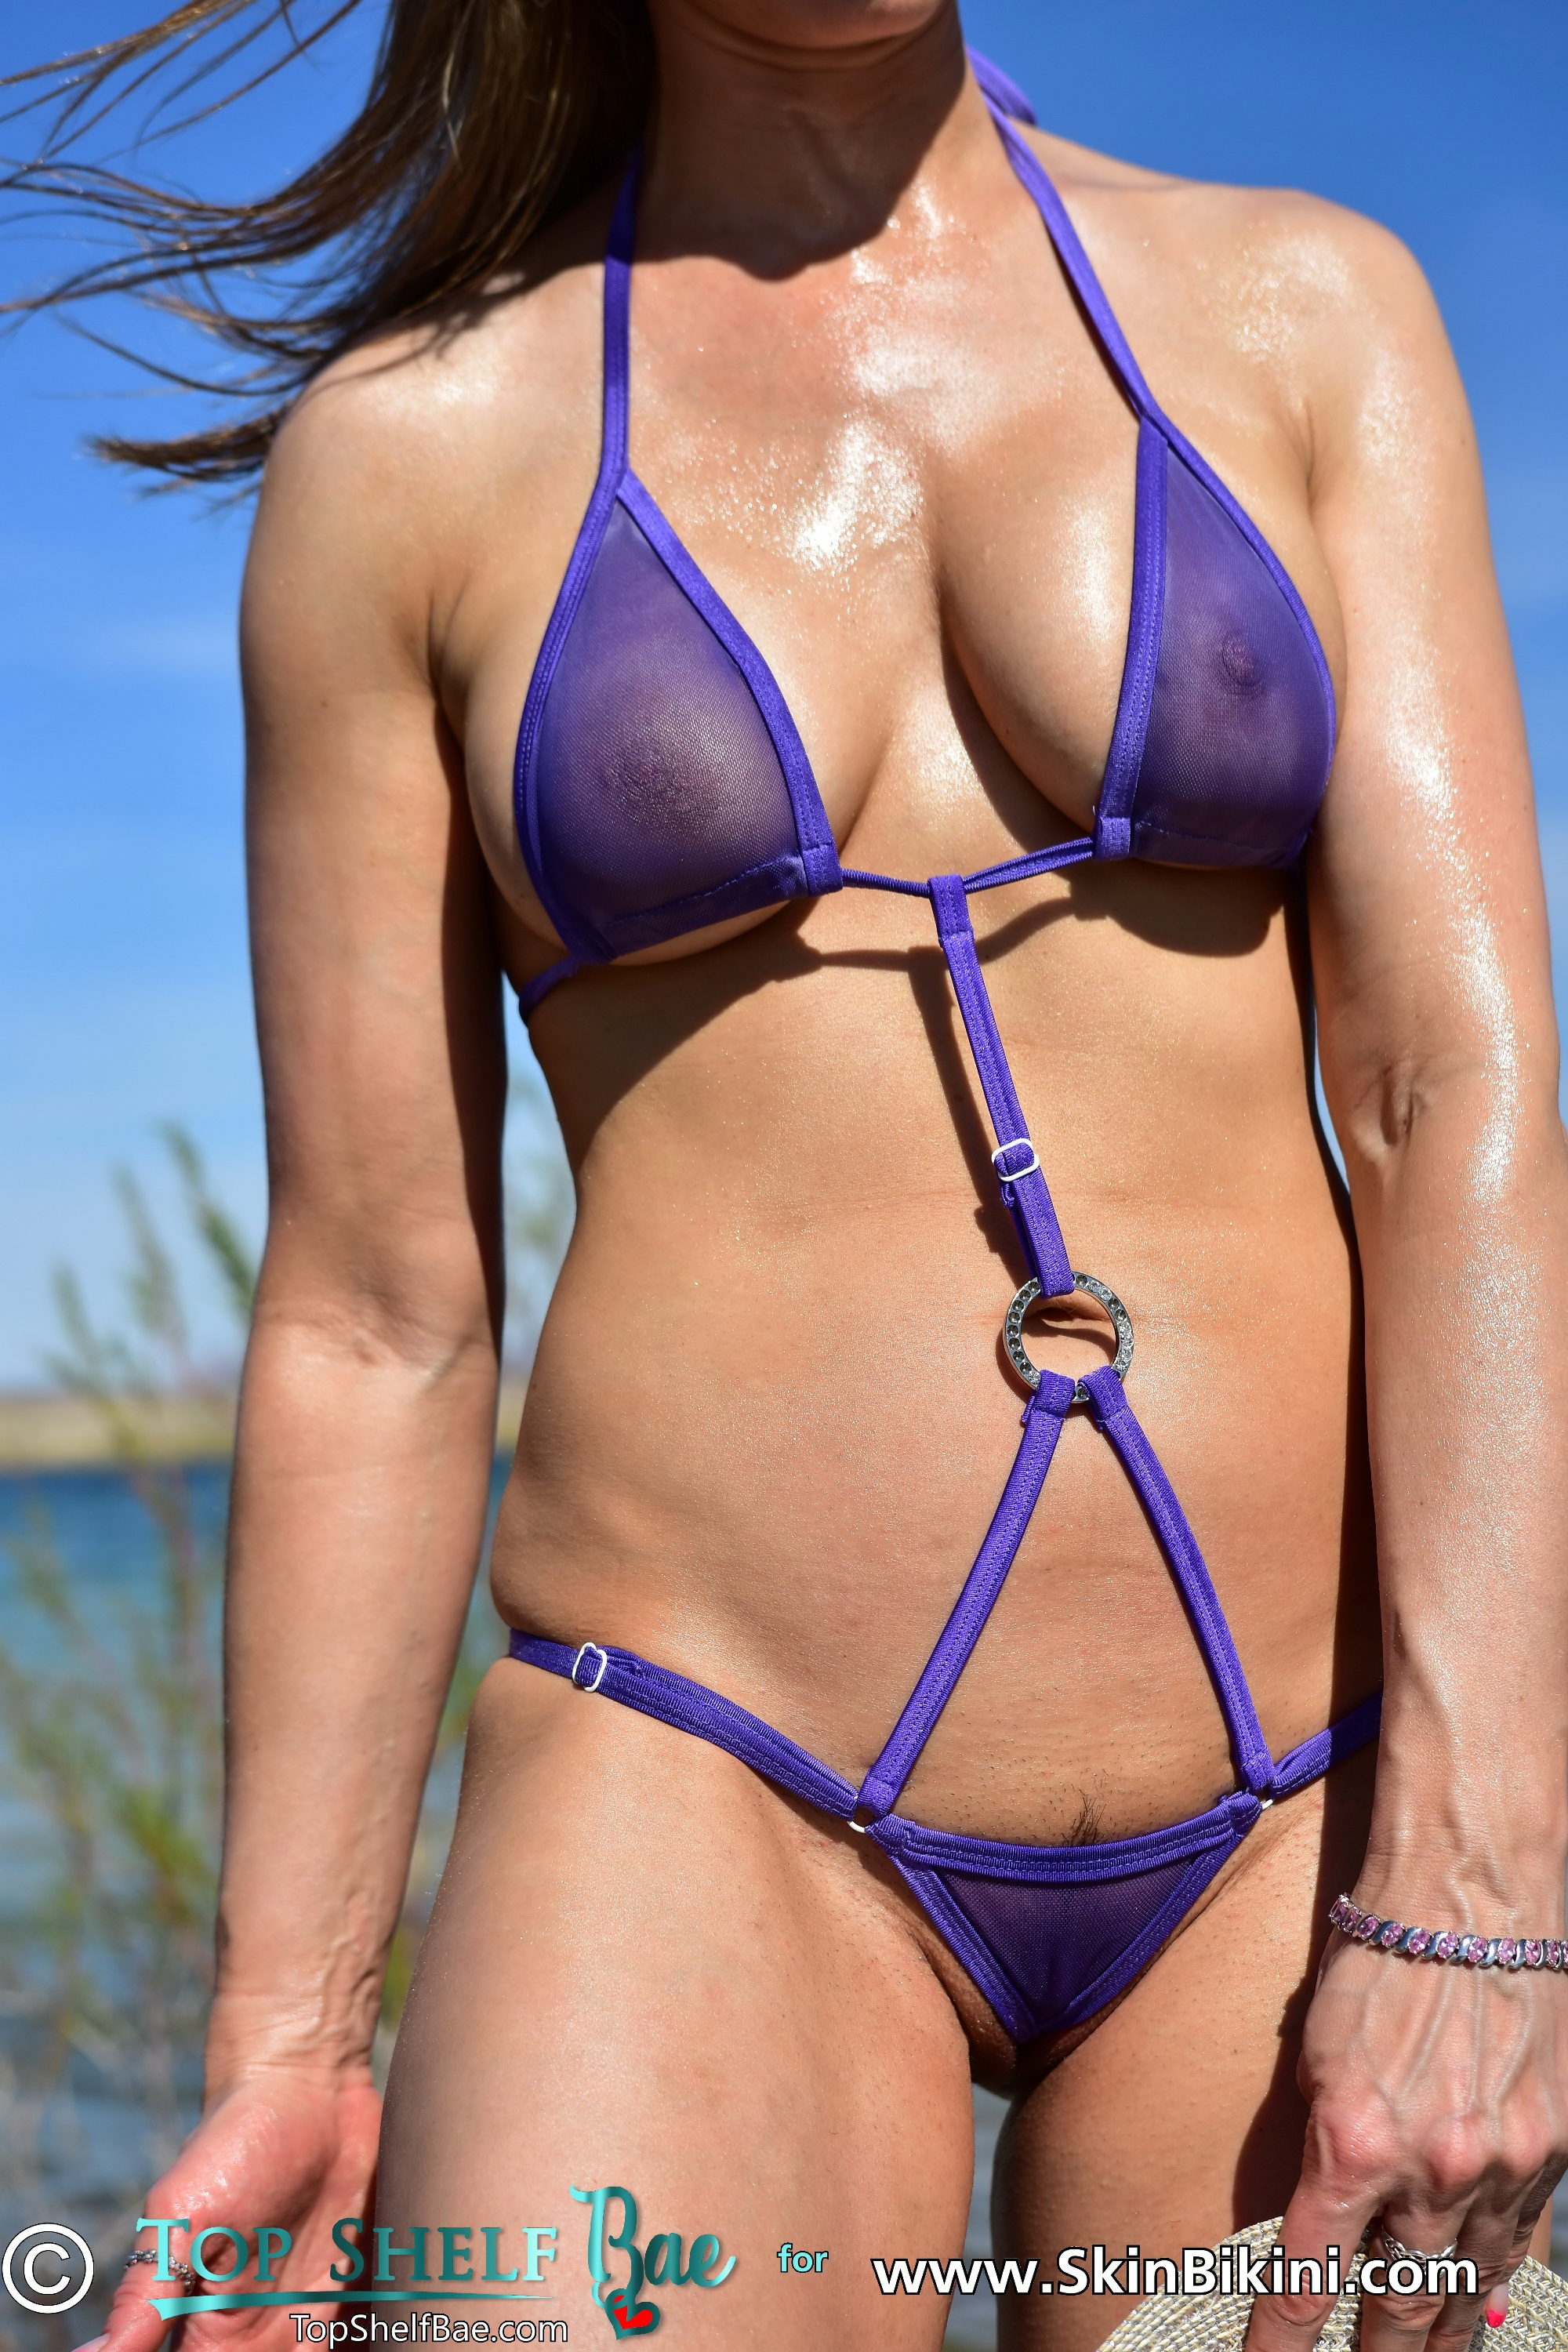 sexy model from topshelfbae is wearing skinbikini.com's hot see-thru buckled monokini in purple